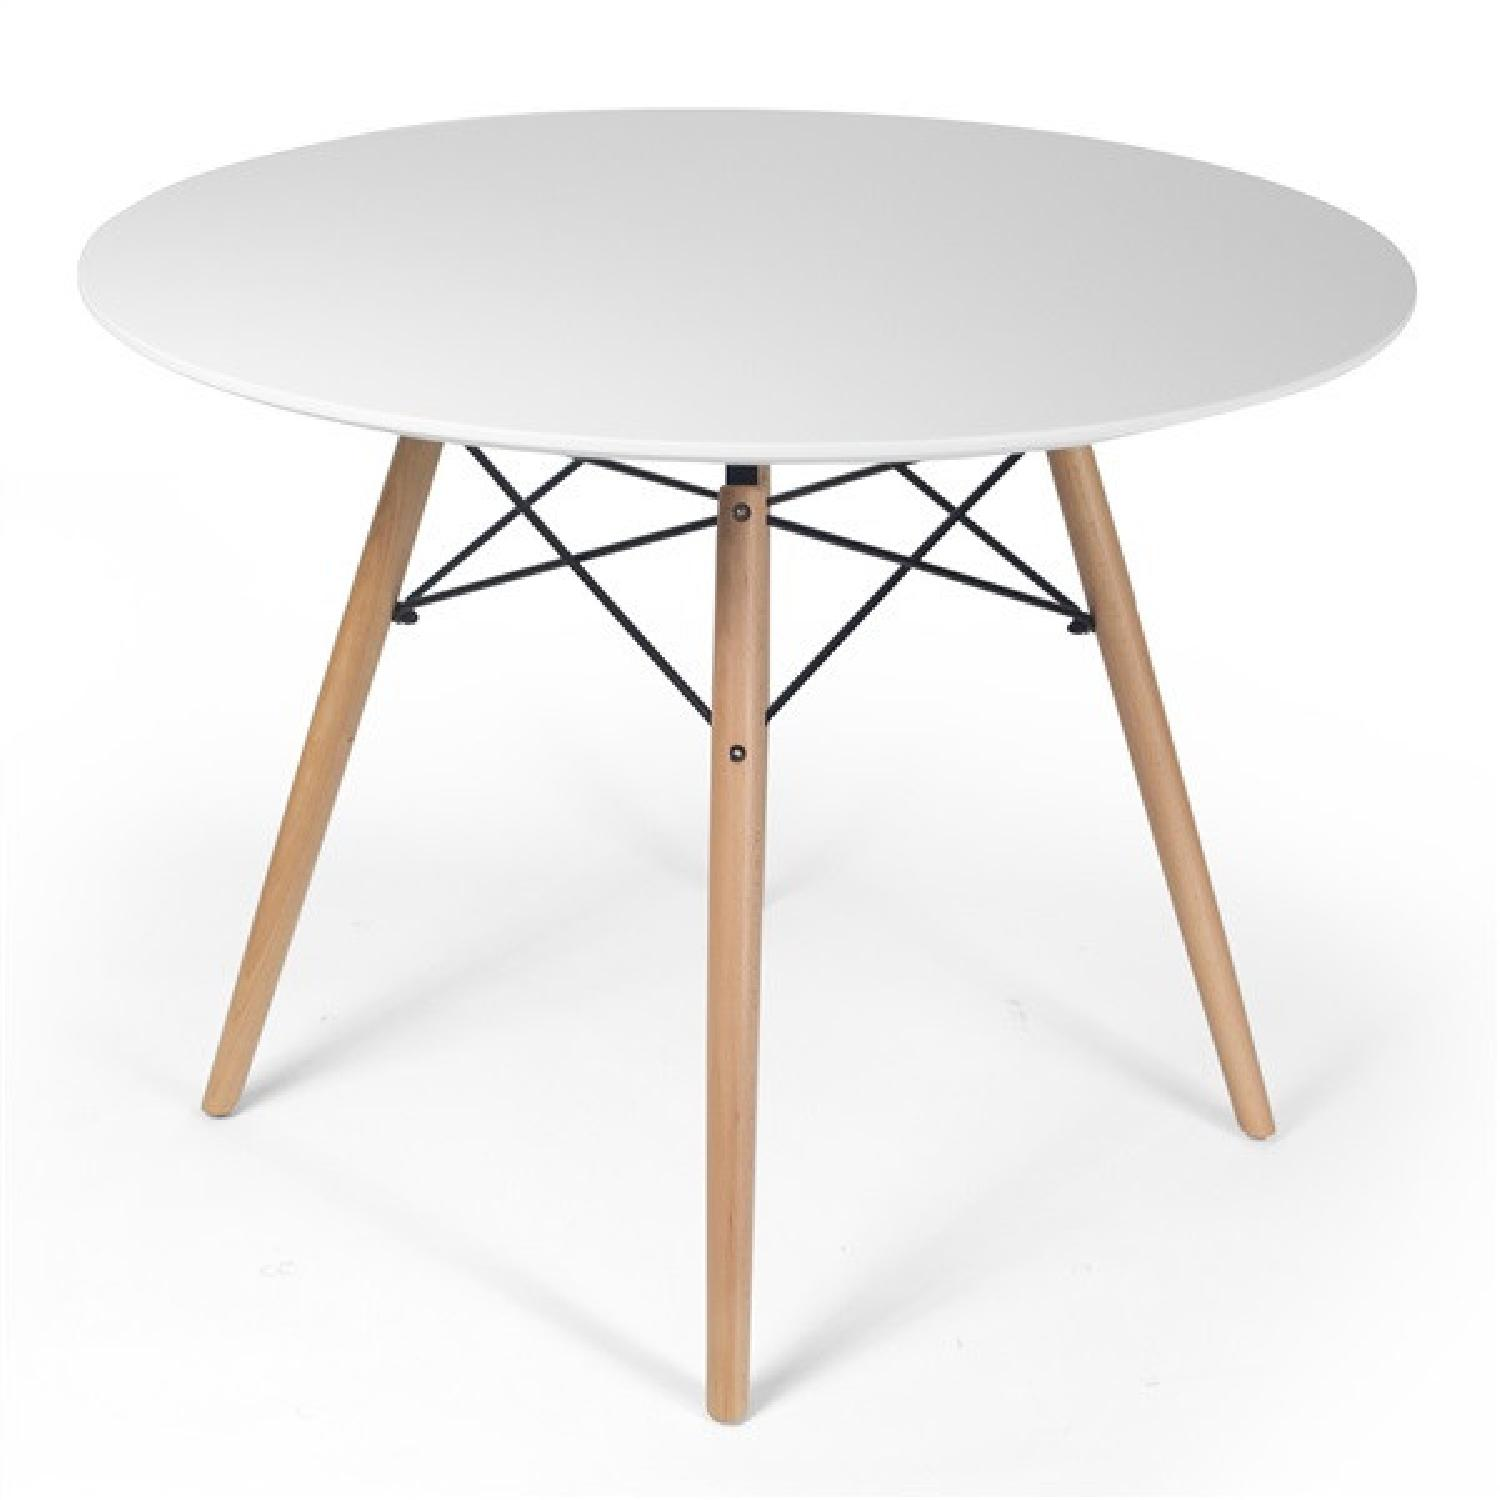 Eiffel Style Dining Table - image-4